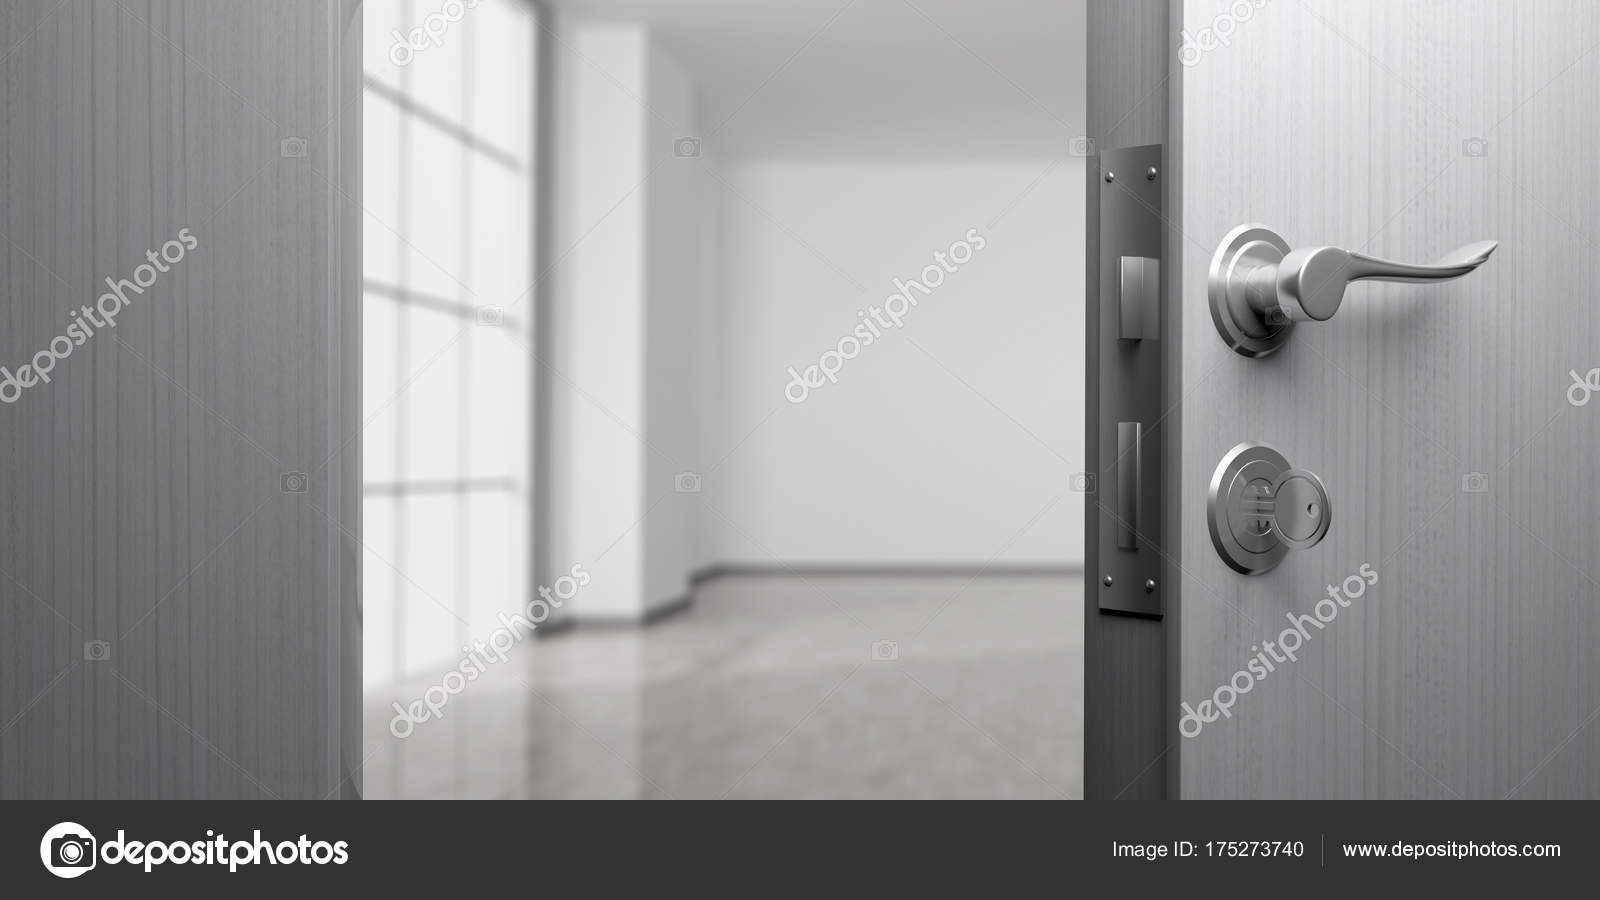 Office or apartment doorway with open door, blur empty room